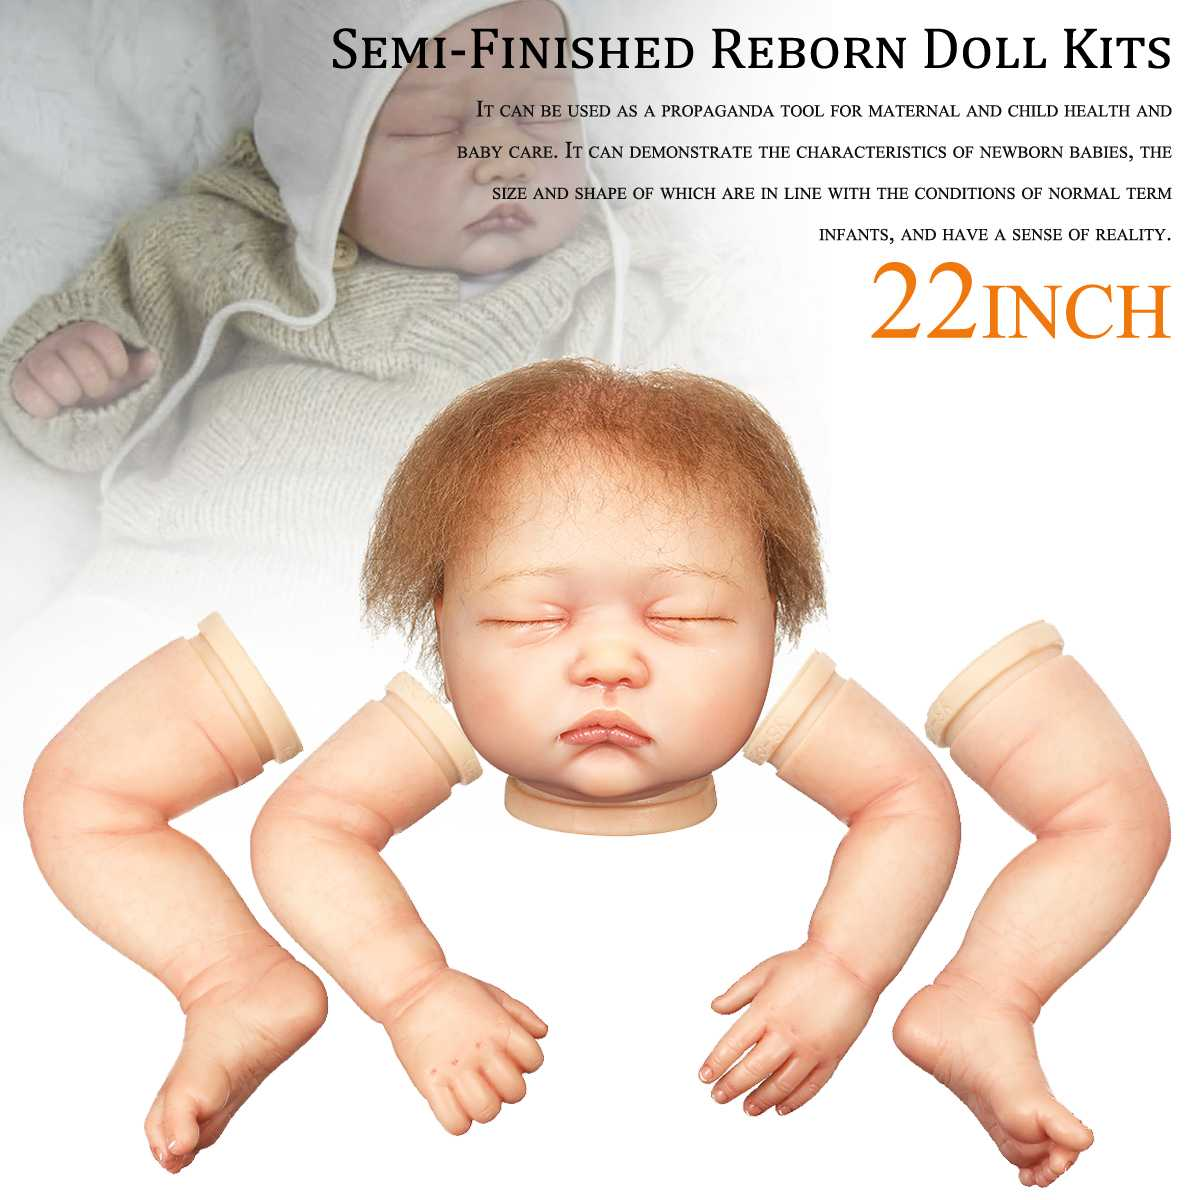 22 Inch Unisex lifelike Vinyl Silicone Rebirth Baby Alive Doll Kits Doll Accessories With Head Limbs Blank Unpainted Parts DIY22 Inch Unisex lifelike Vinyl Silicone Rebirth Baby Alive Doll Kits Doll Accessories With Head Limbs Blank Unpainted Parts DIY